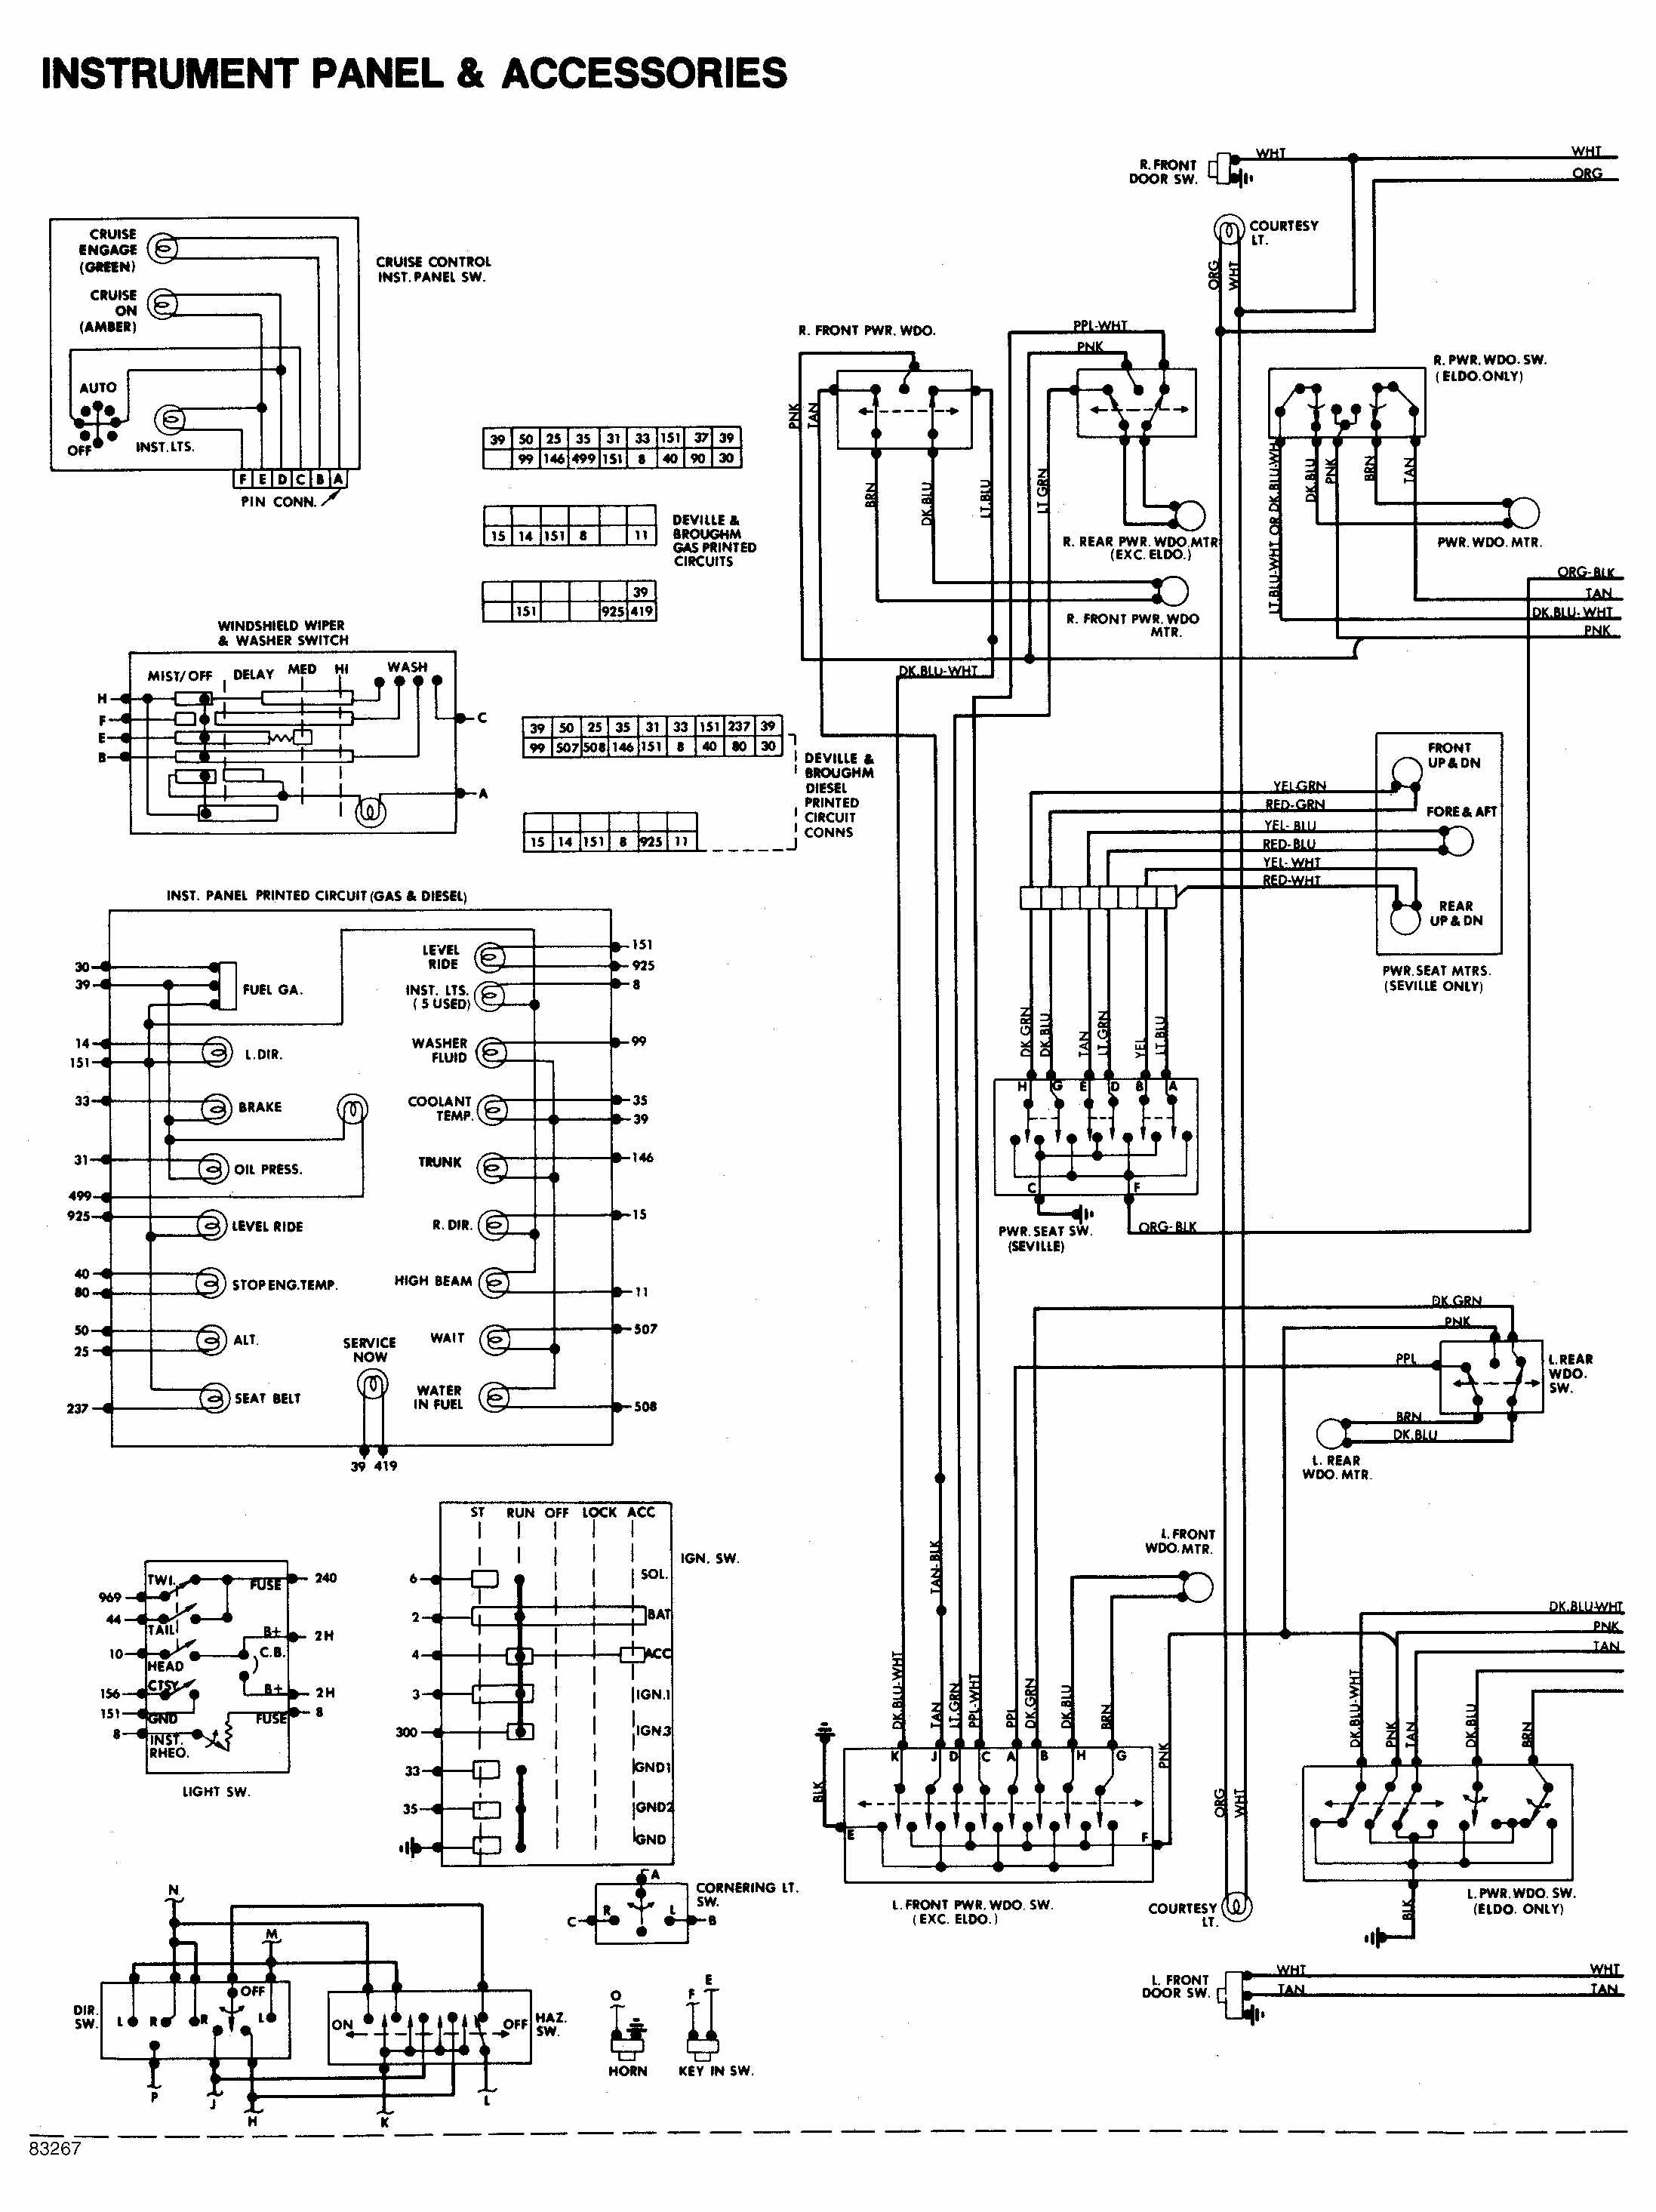 instrument panel and accessories wiring diagram of 1984 cadillac deville gm wiring diagrams wiring diagram radio fm \u2022 wiring diagrams j 2005 cadillac cts power seat wiring diagram at n-0.co